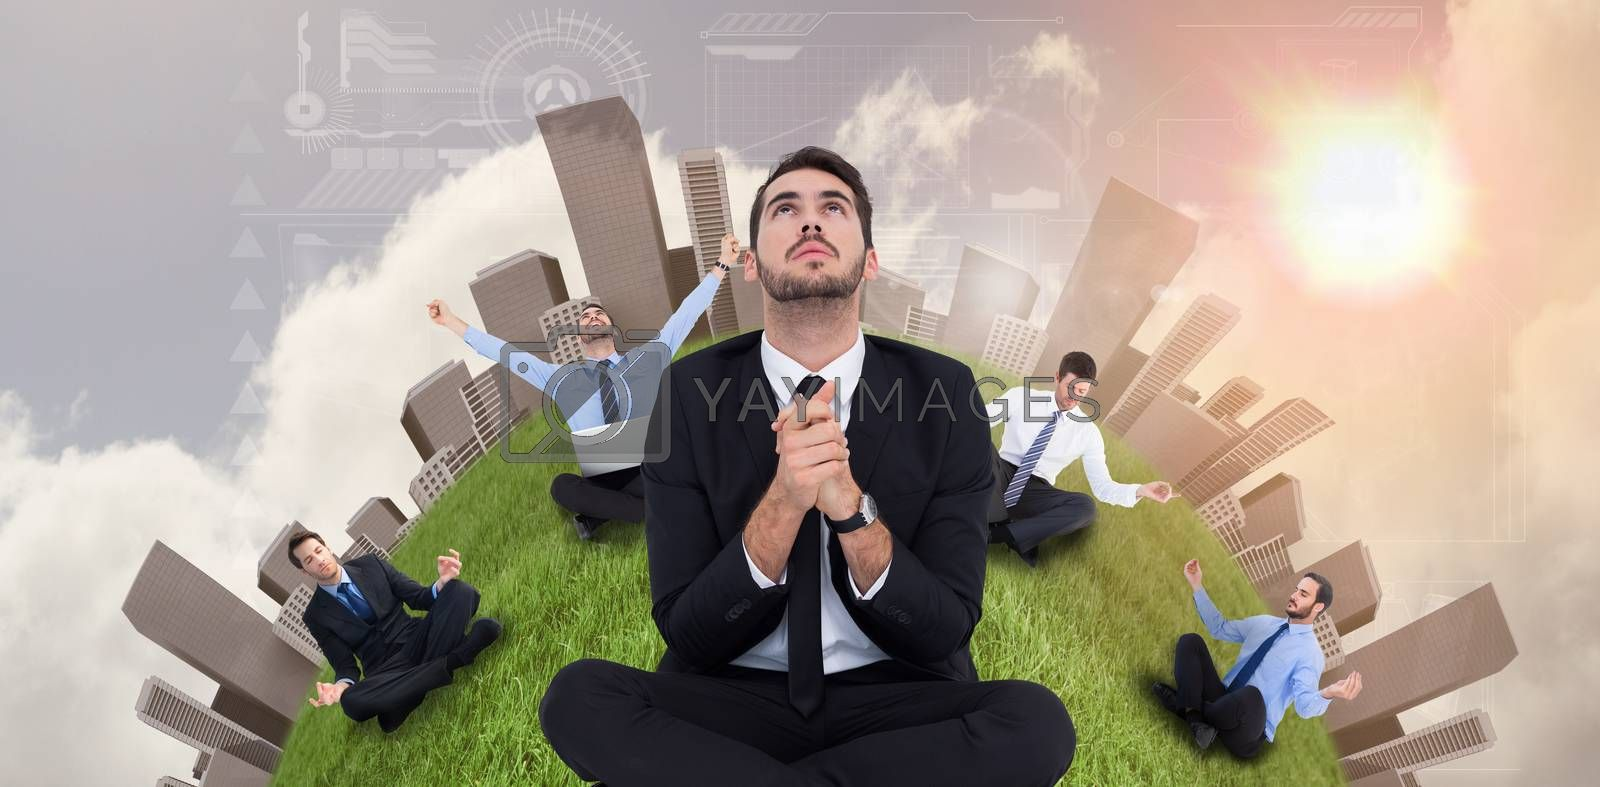 Businessman sitting praying and looking up against bright blue sky with clouds